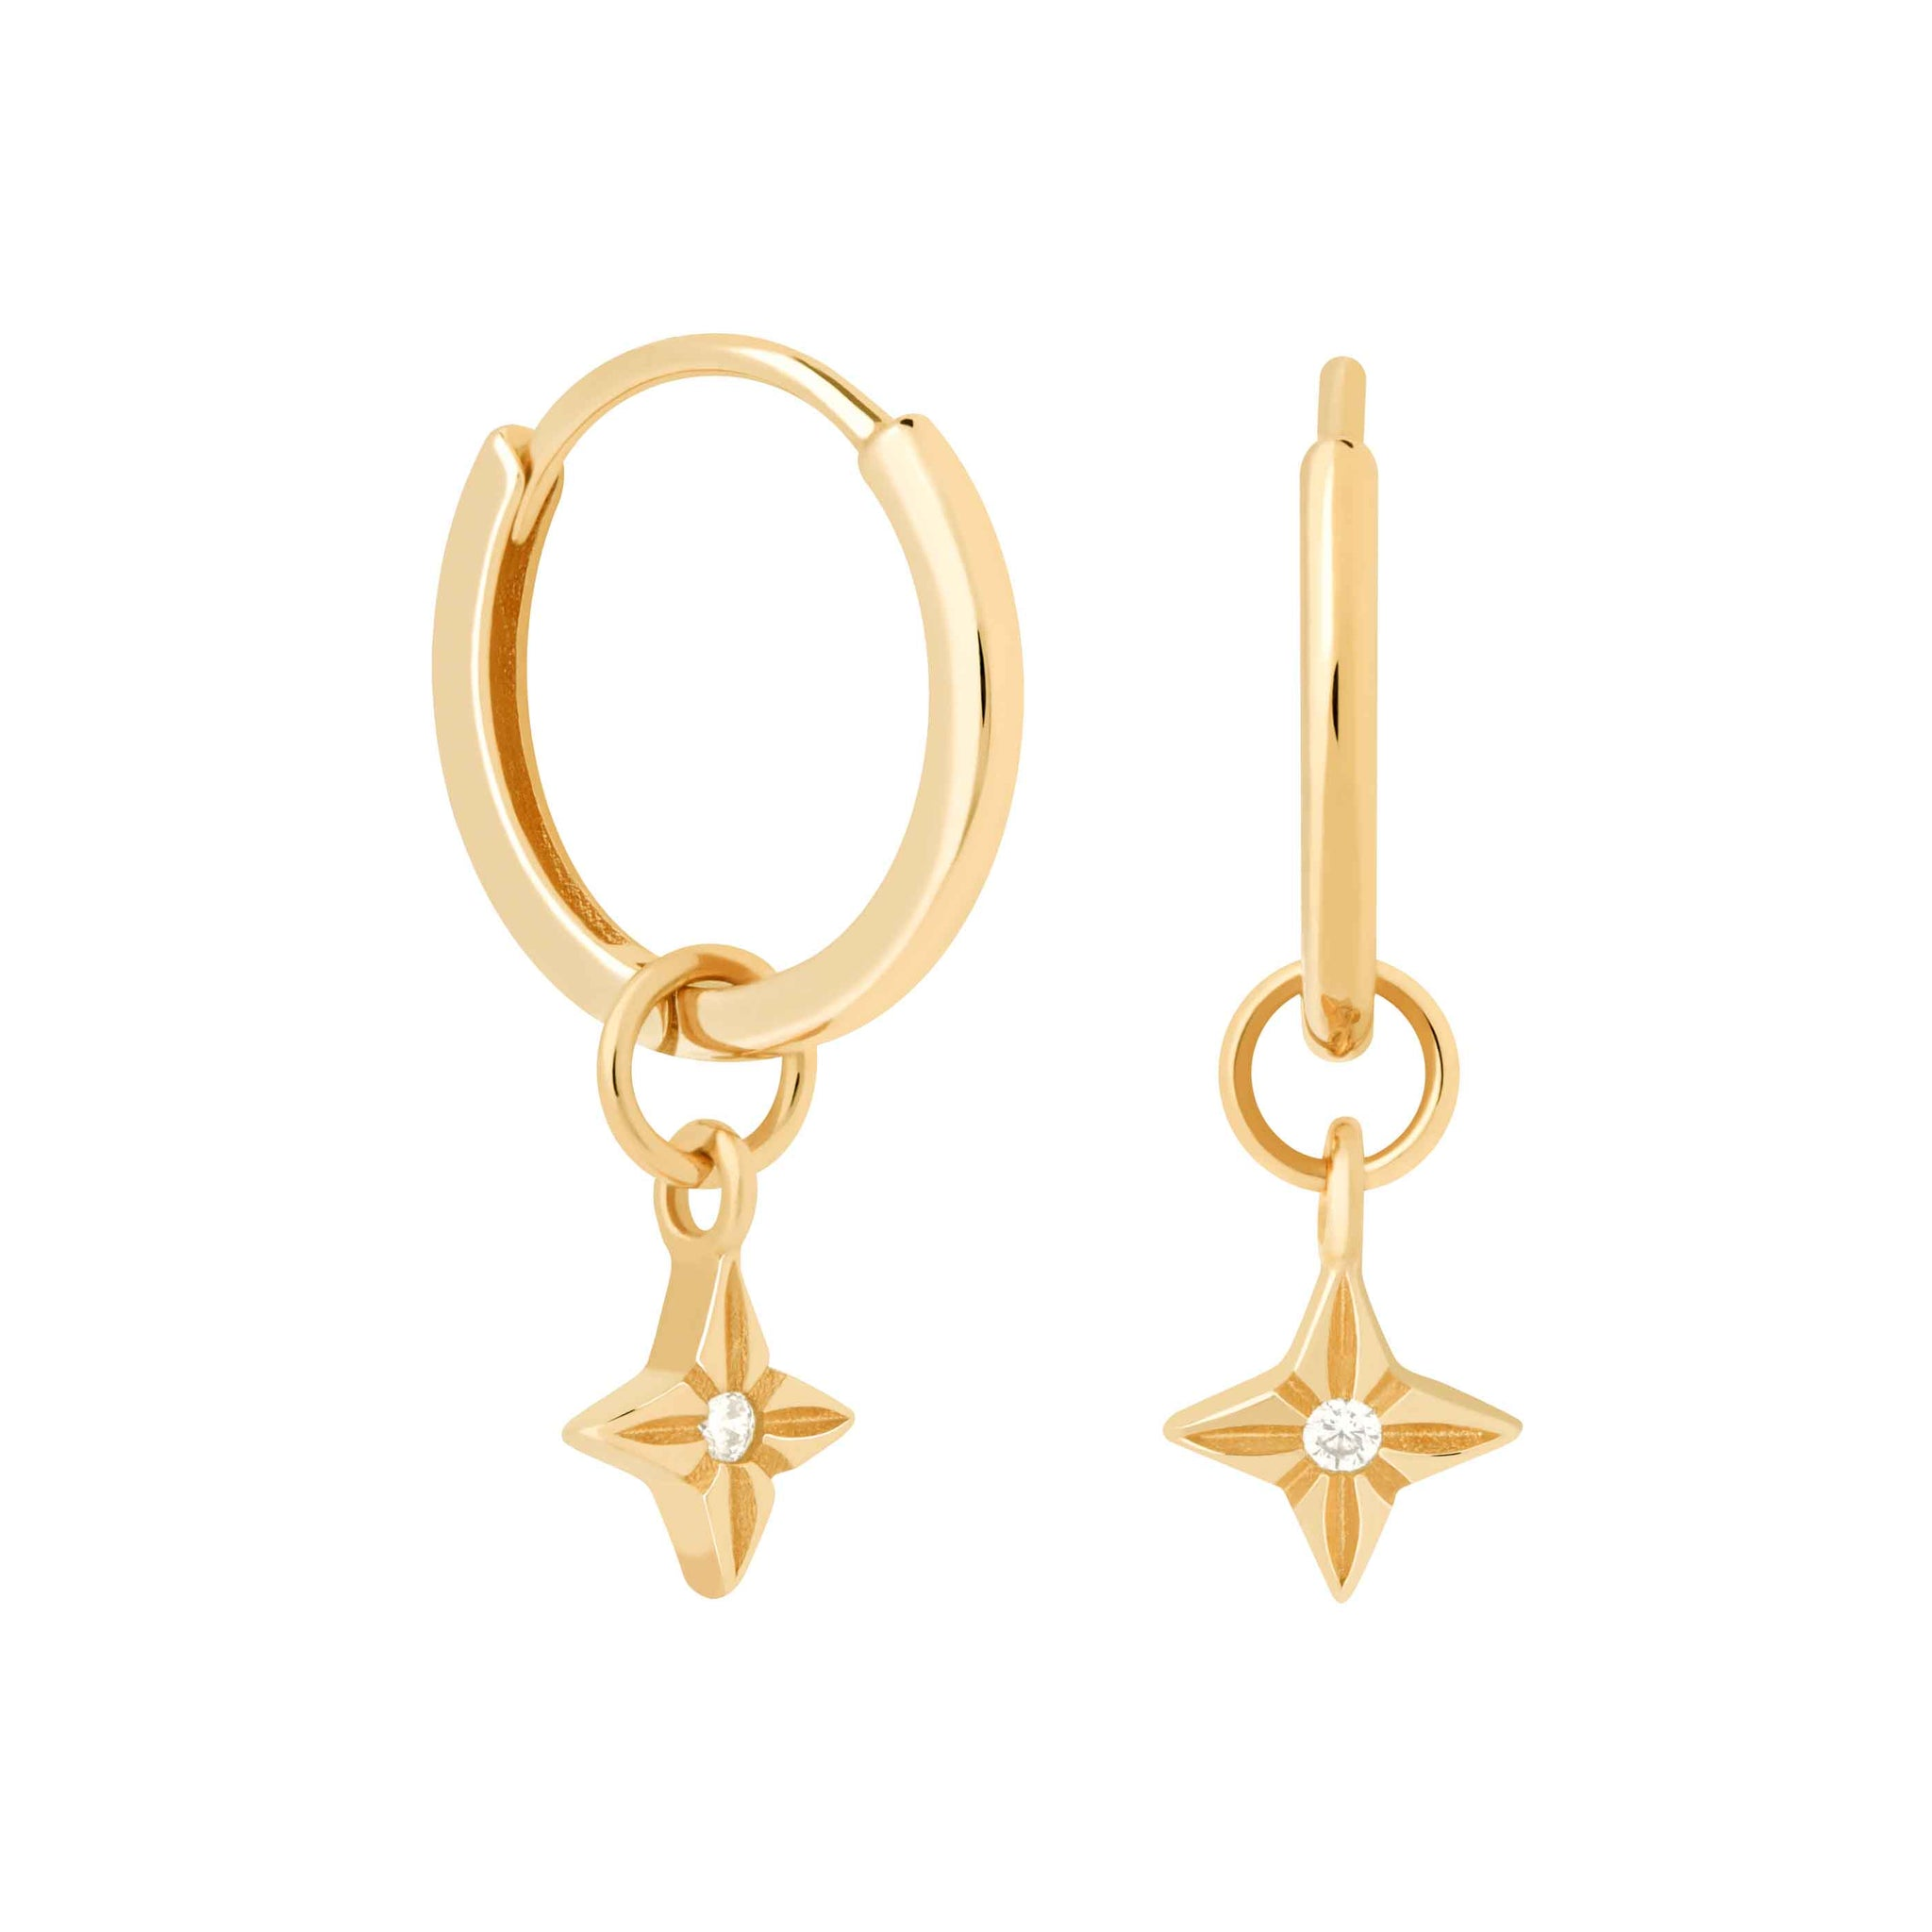 Etched Star Hoops in Gold